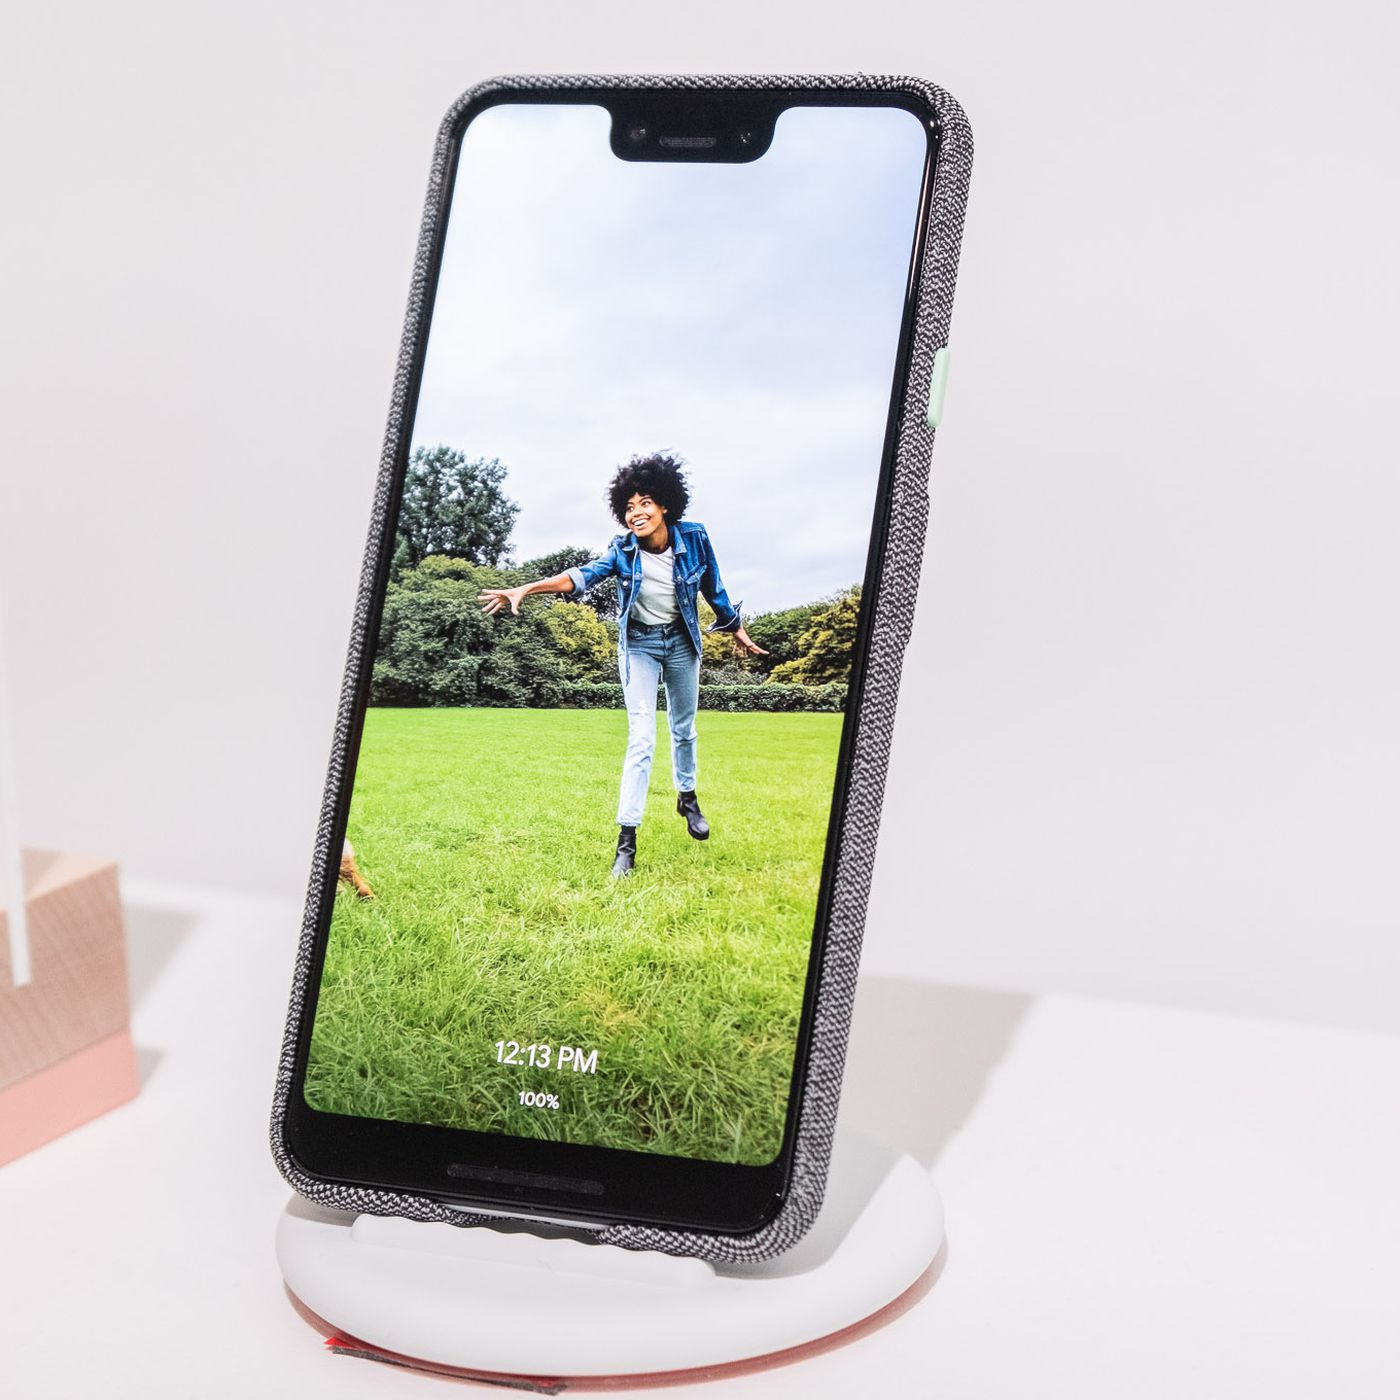 sports shoes ebbe4 3c98b This is how much Google's Pixel 3 costs at Verizon, Best Buy, and ...